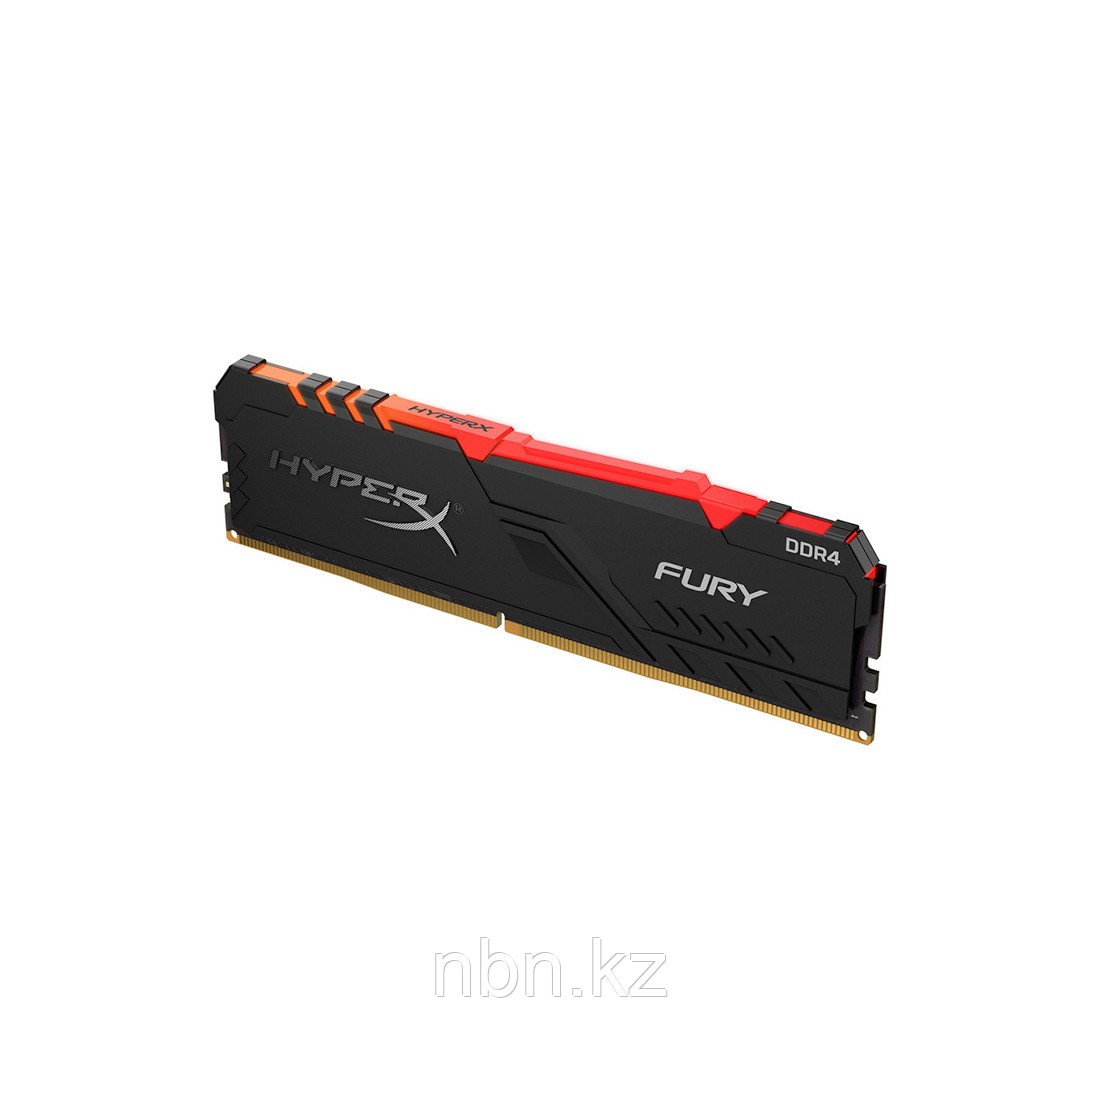 Модуль памяти Kingston HyperX Fury RGB HX430C15FB3A/16 DDR4 16G 3000MHz